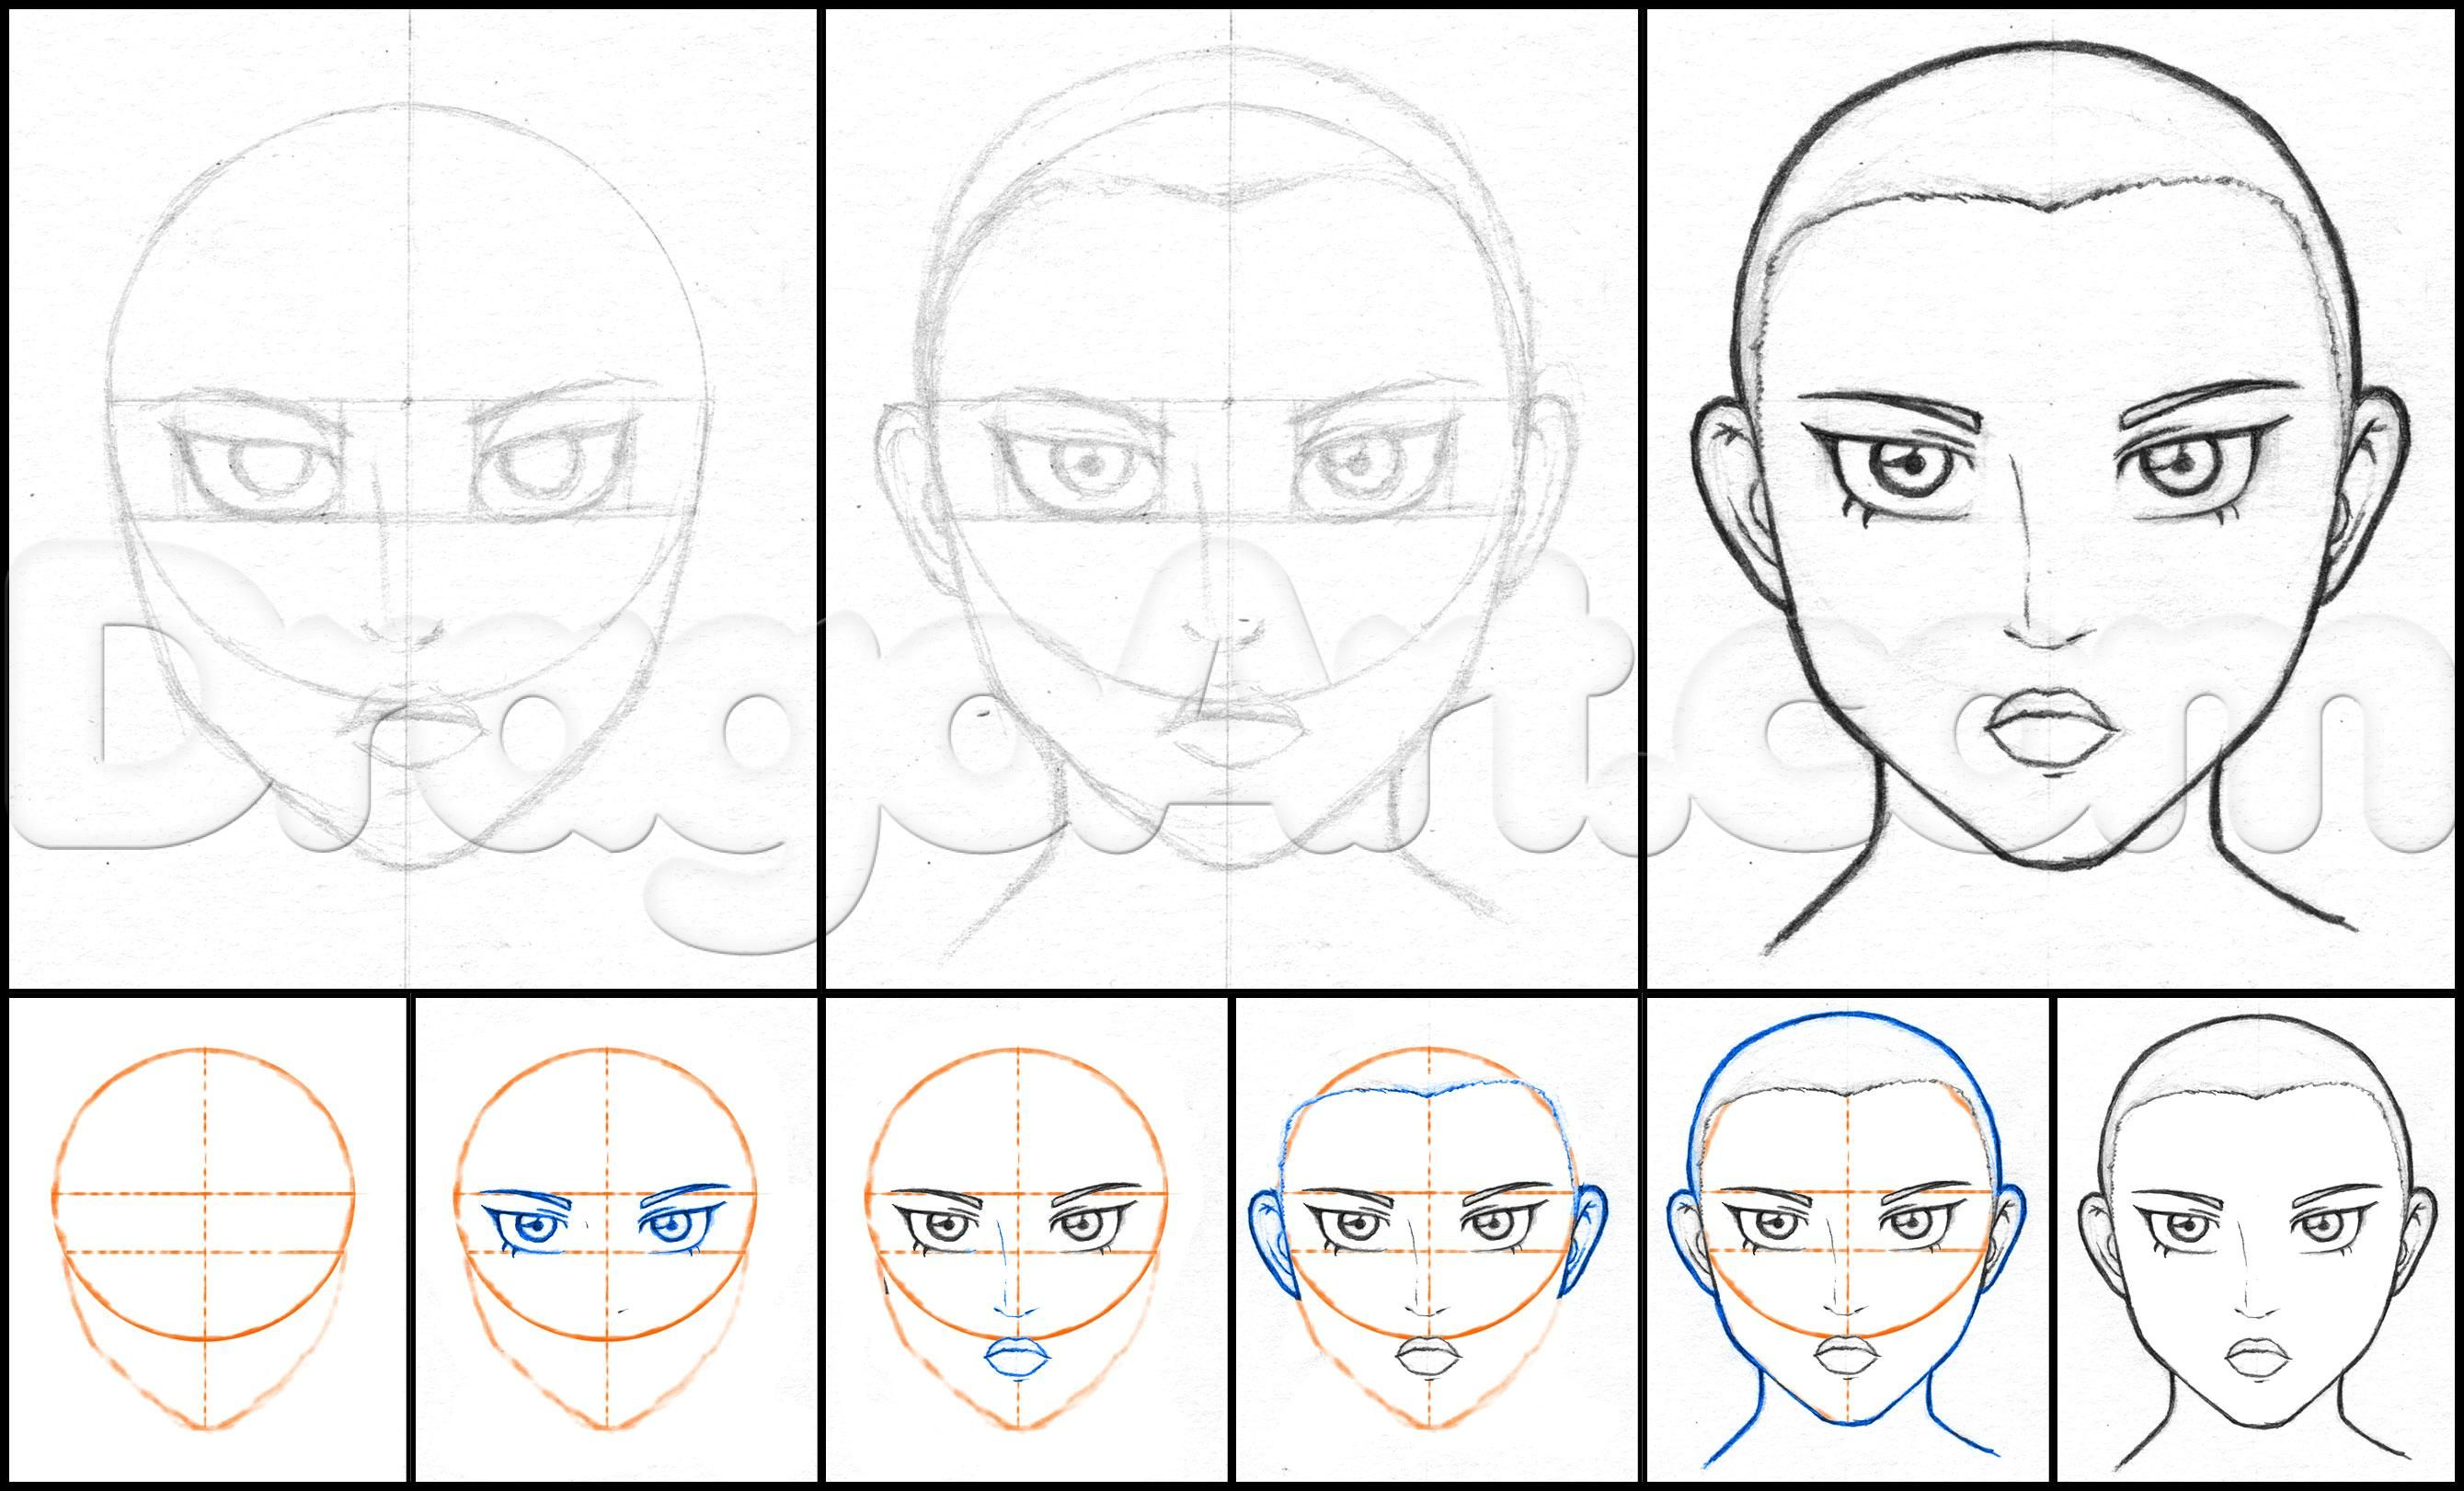 How to draw anime faces in pencil step 1